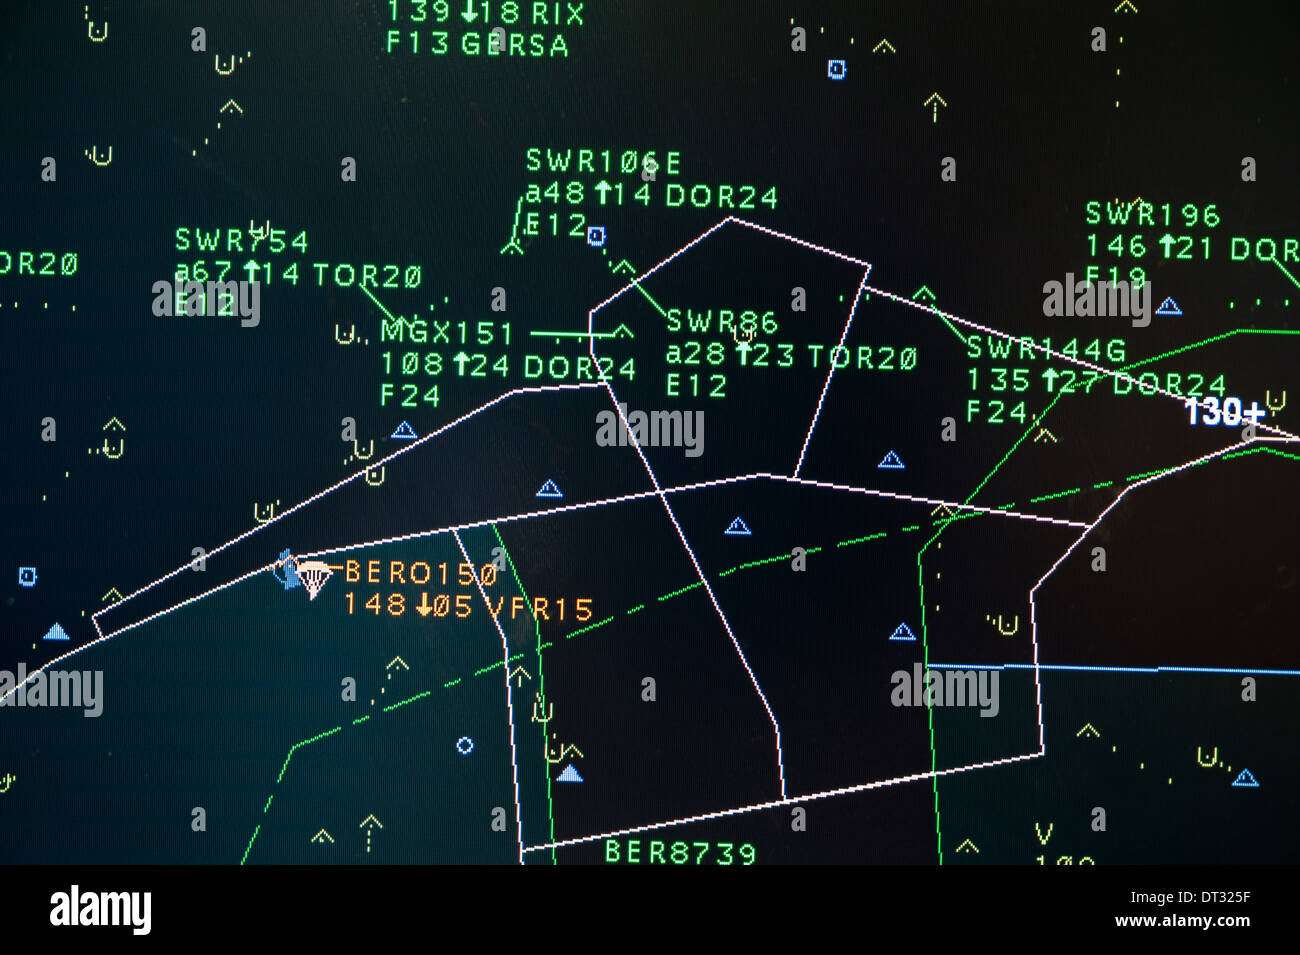 Computer monitors in the air traffic control centre of 'Skyguide' show flight paths of aircrafts in Switzerland's busy airspace - Stock Image